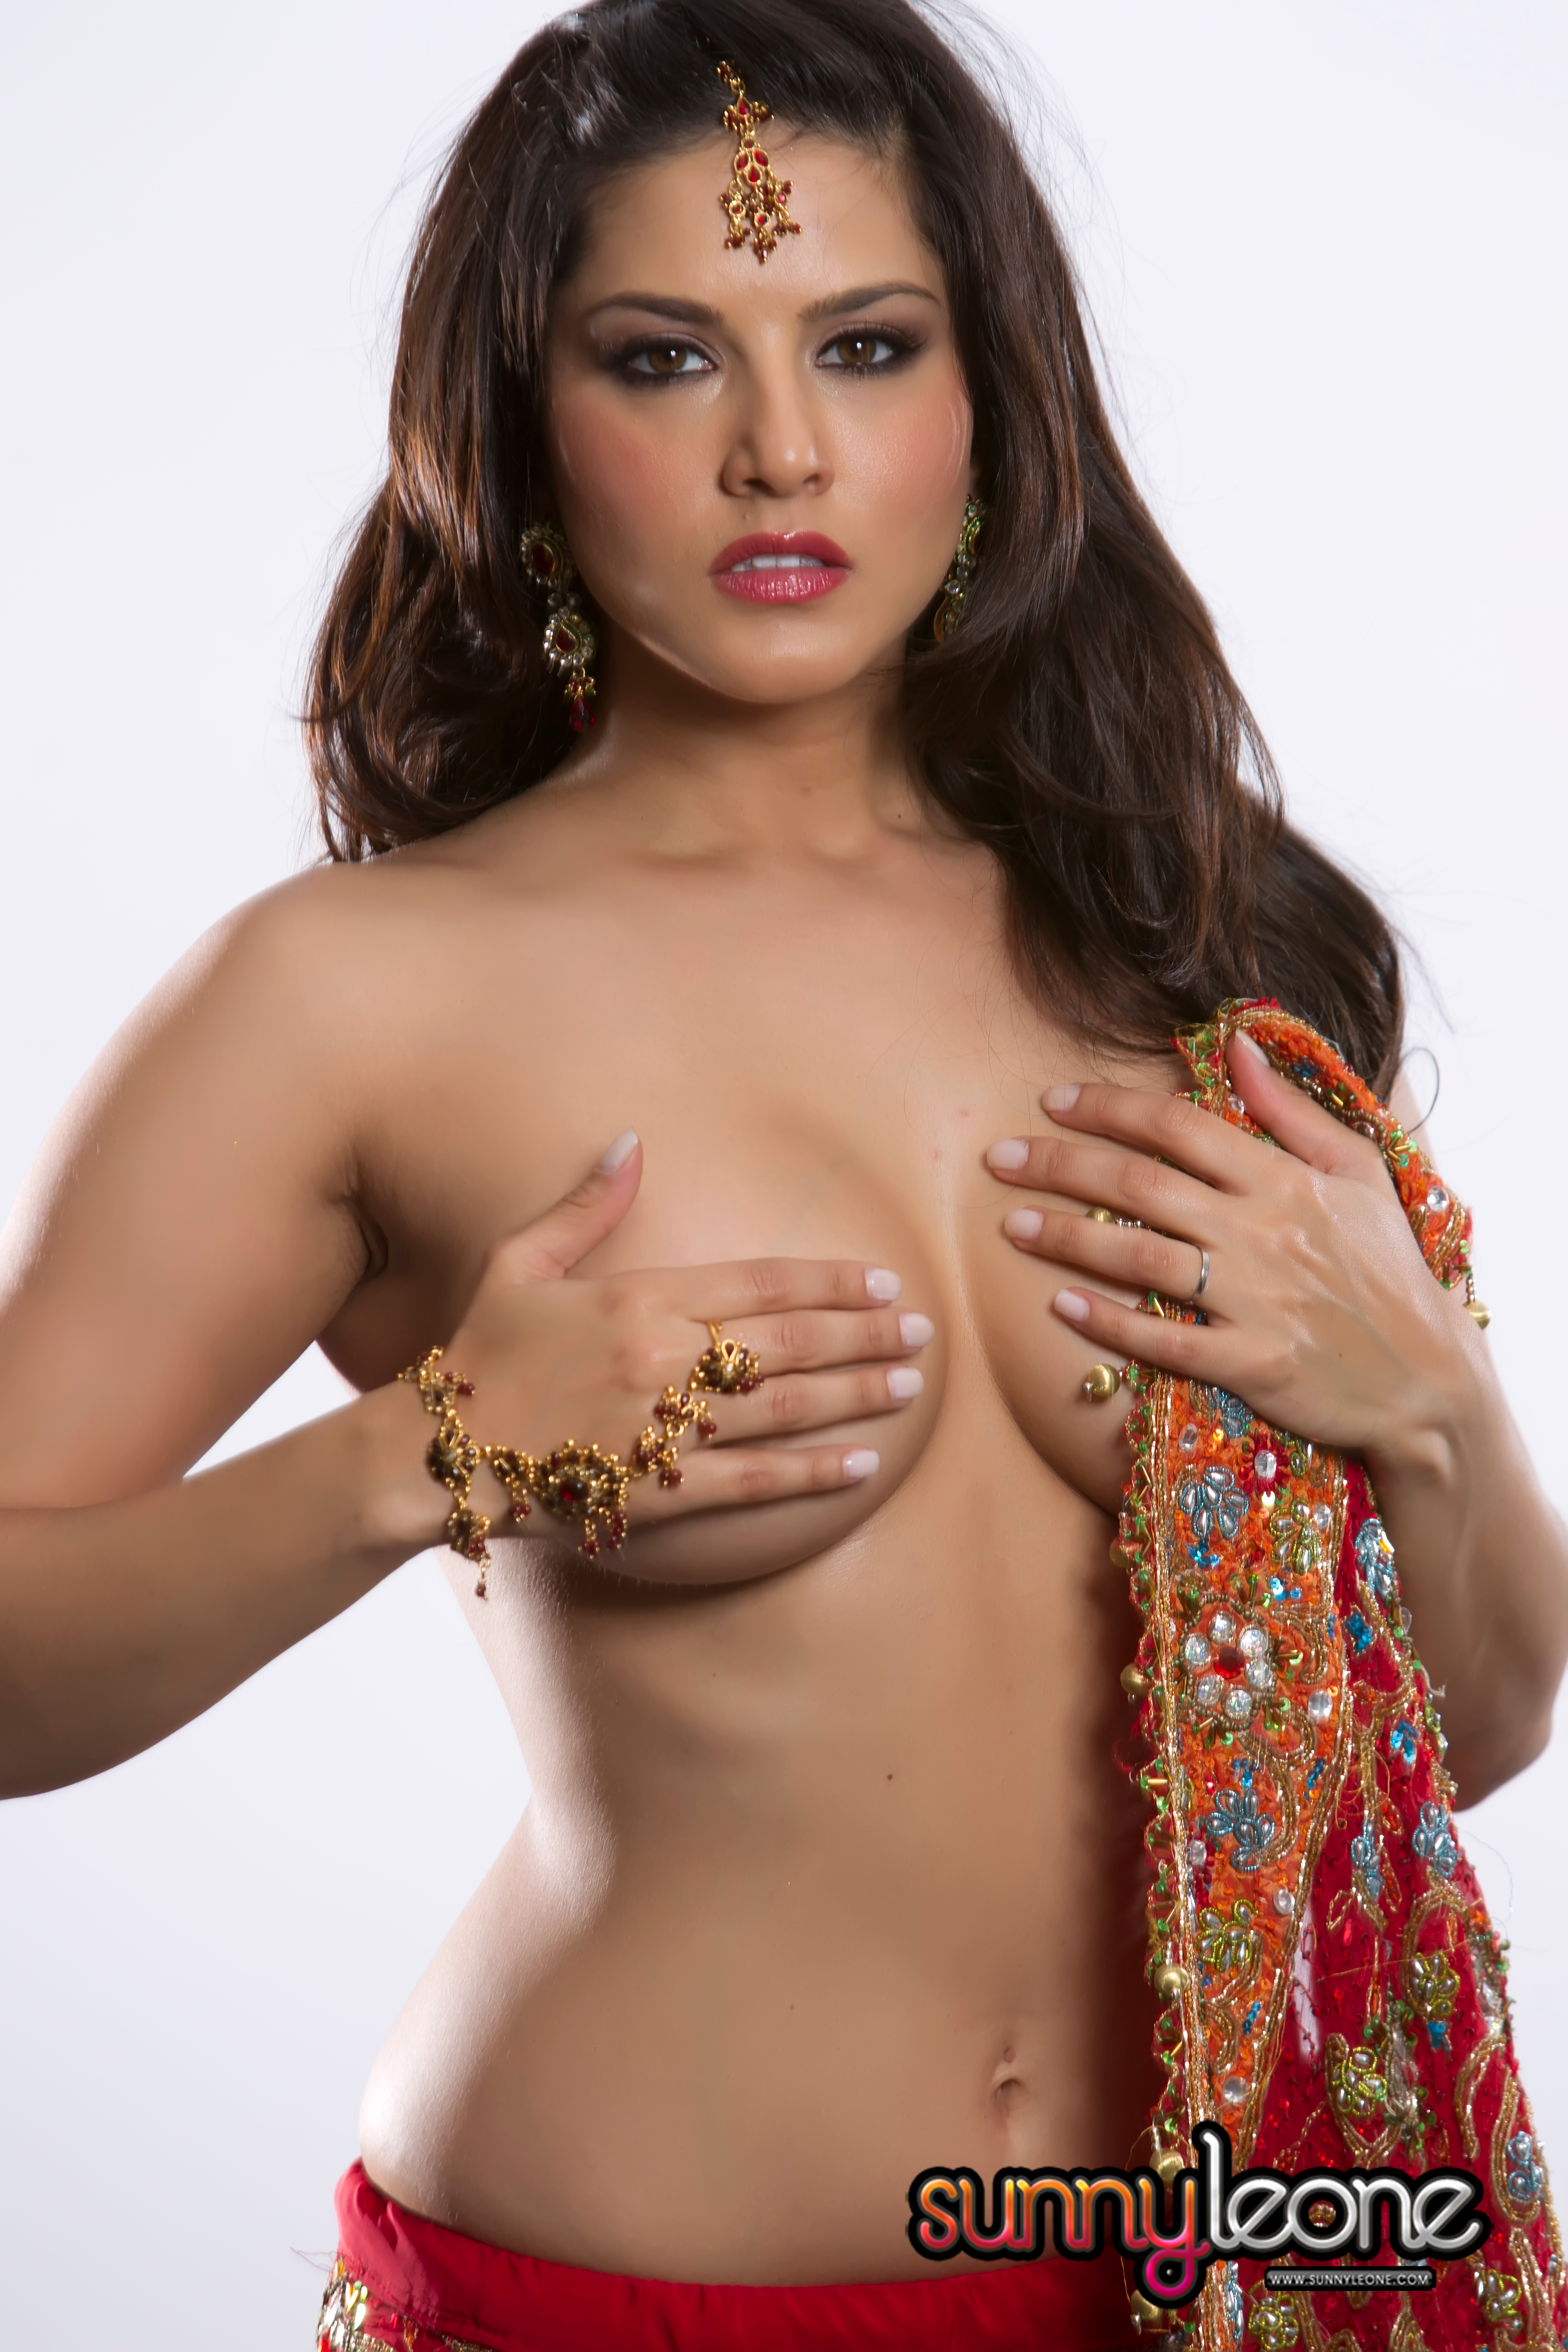 Indian Red Porn Cheap ♤ ♧ ♢ ♥ joker → sunny leone – sexy indian red saari (hi-res